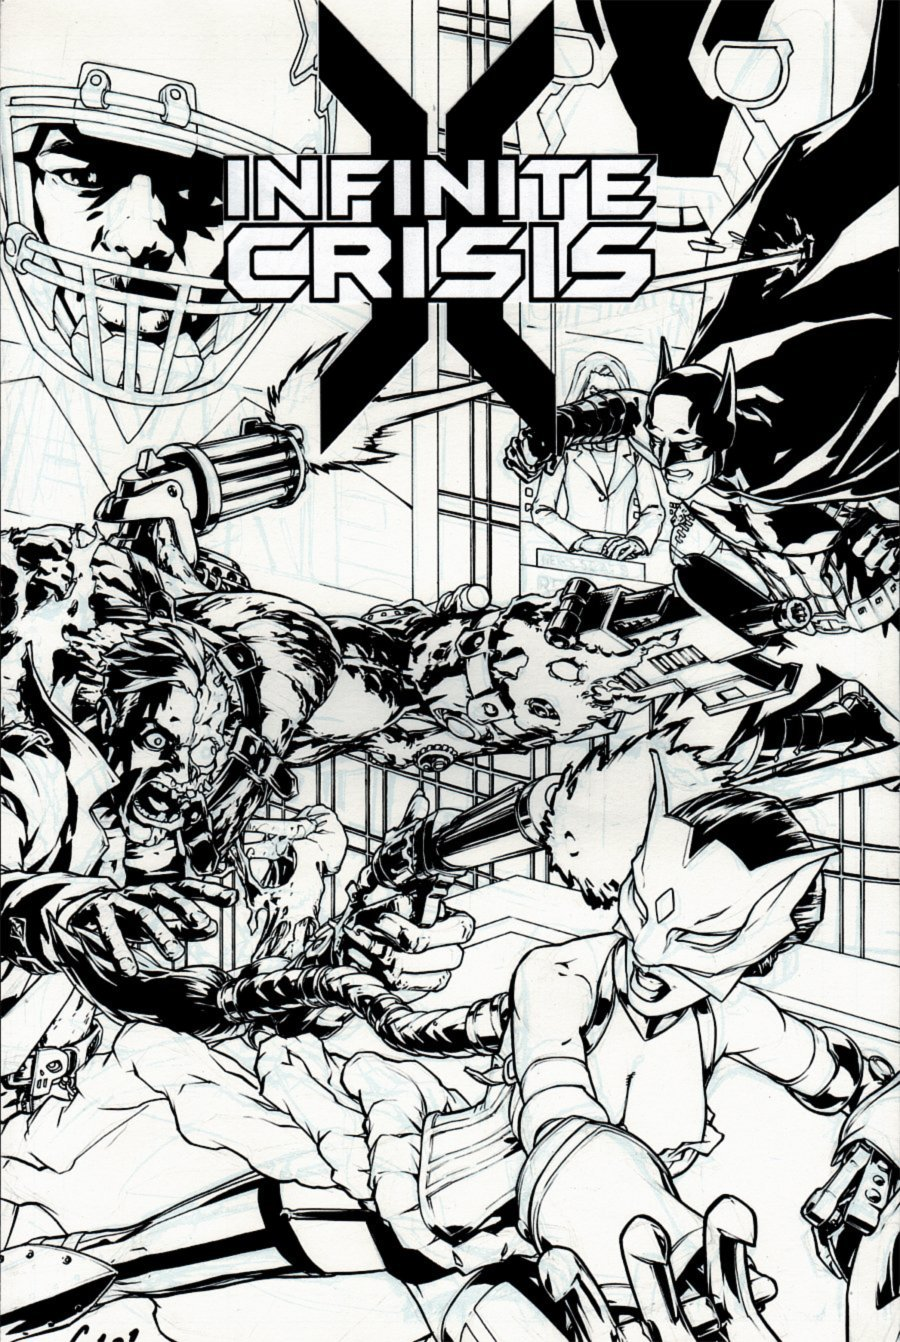 Infinite Crisis #1 Cover (Batman, Catwoman, Two-Face!) 2014